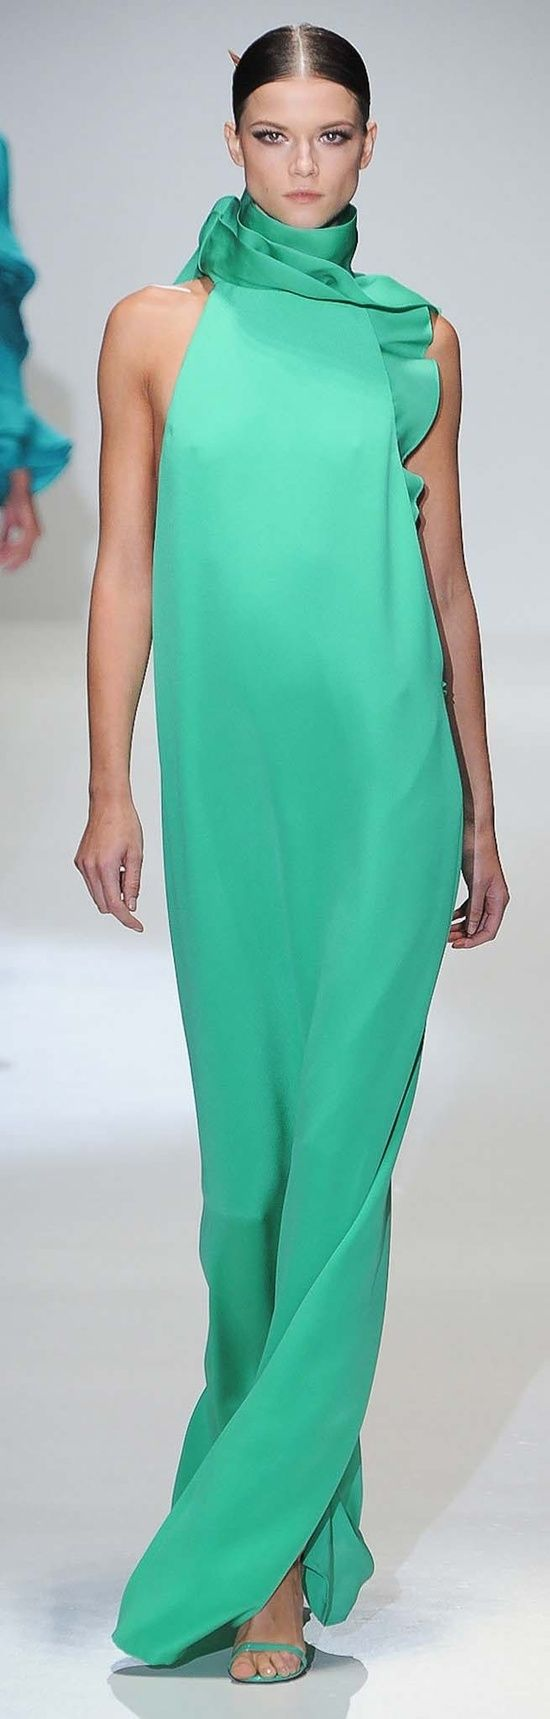 Gucci Spring Summer 2013 Ready-To-Wear